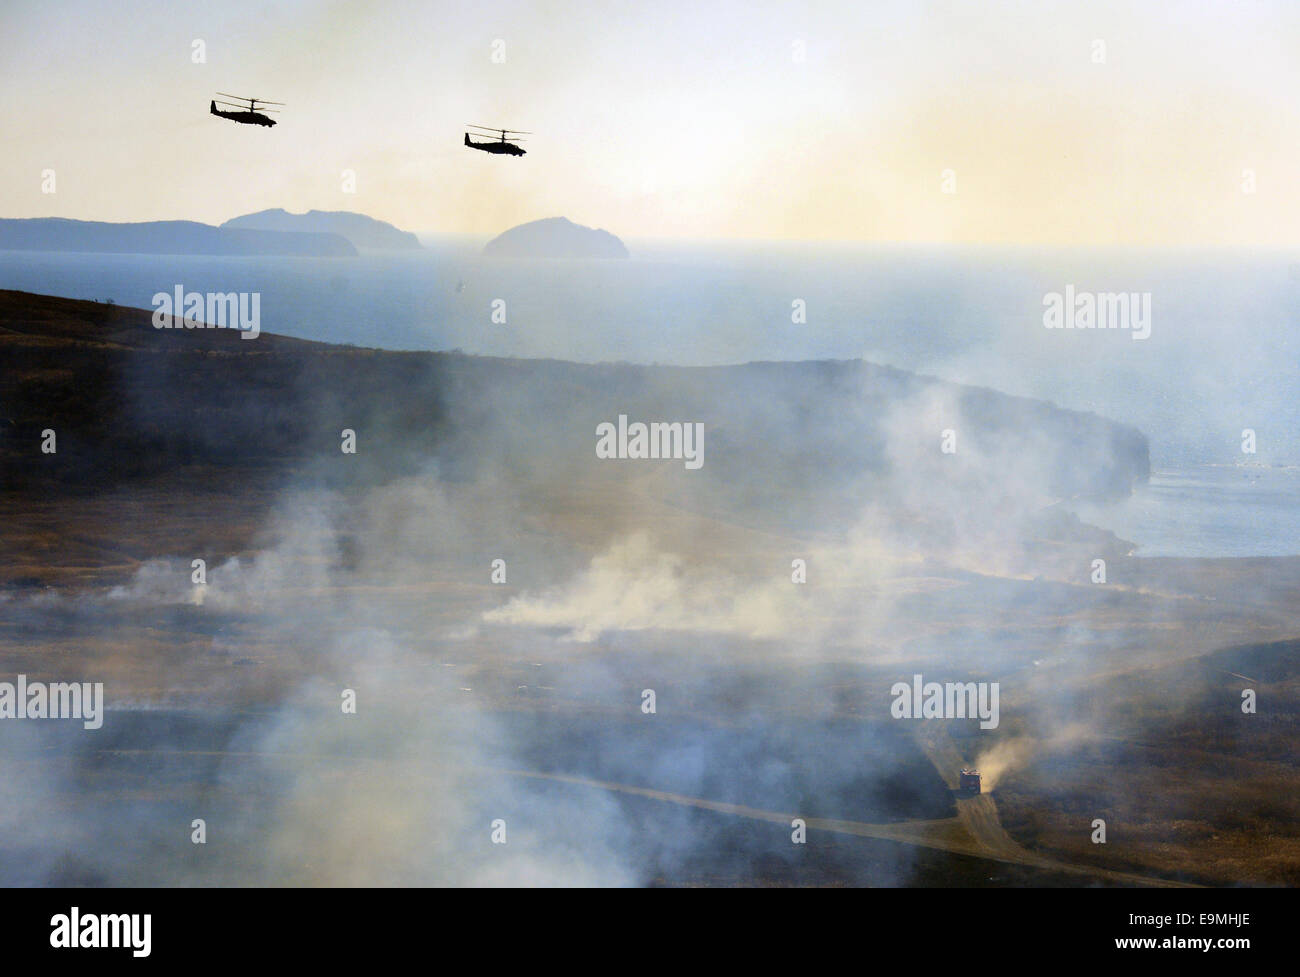 Vladivostok, Russia. 30th October, 2014. Helicopters in flight during a tactical exercise of the Russian Pacific - Stock Image